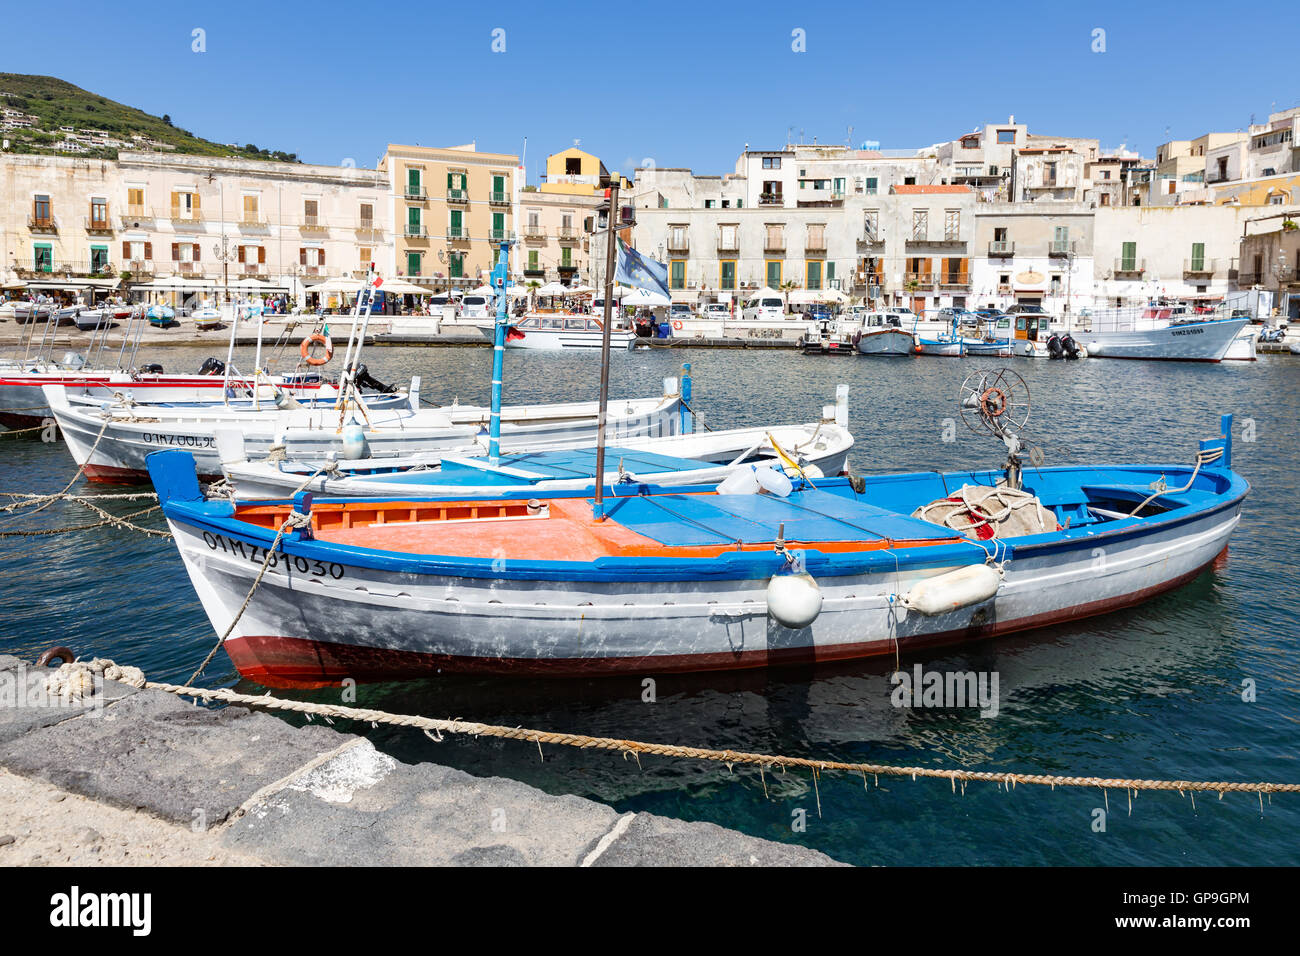 LIPARI, ITALY - MAY 24: Harbor of Lipari at the Aeolian islands on May 24, 2016 at Sicily, Italy - Stock Image